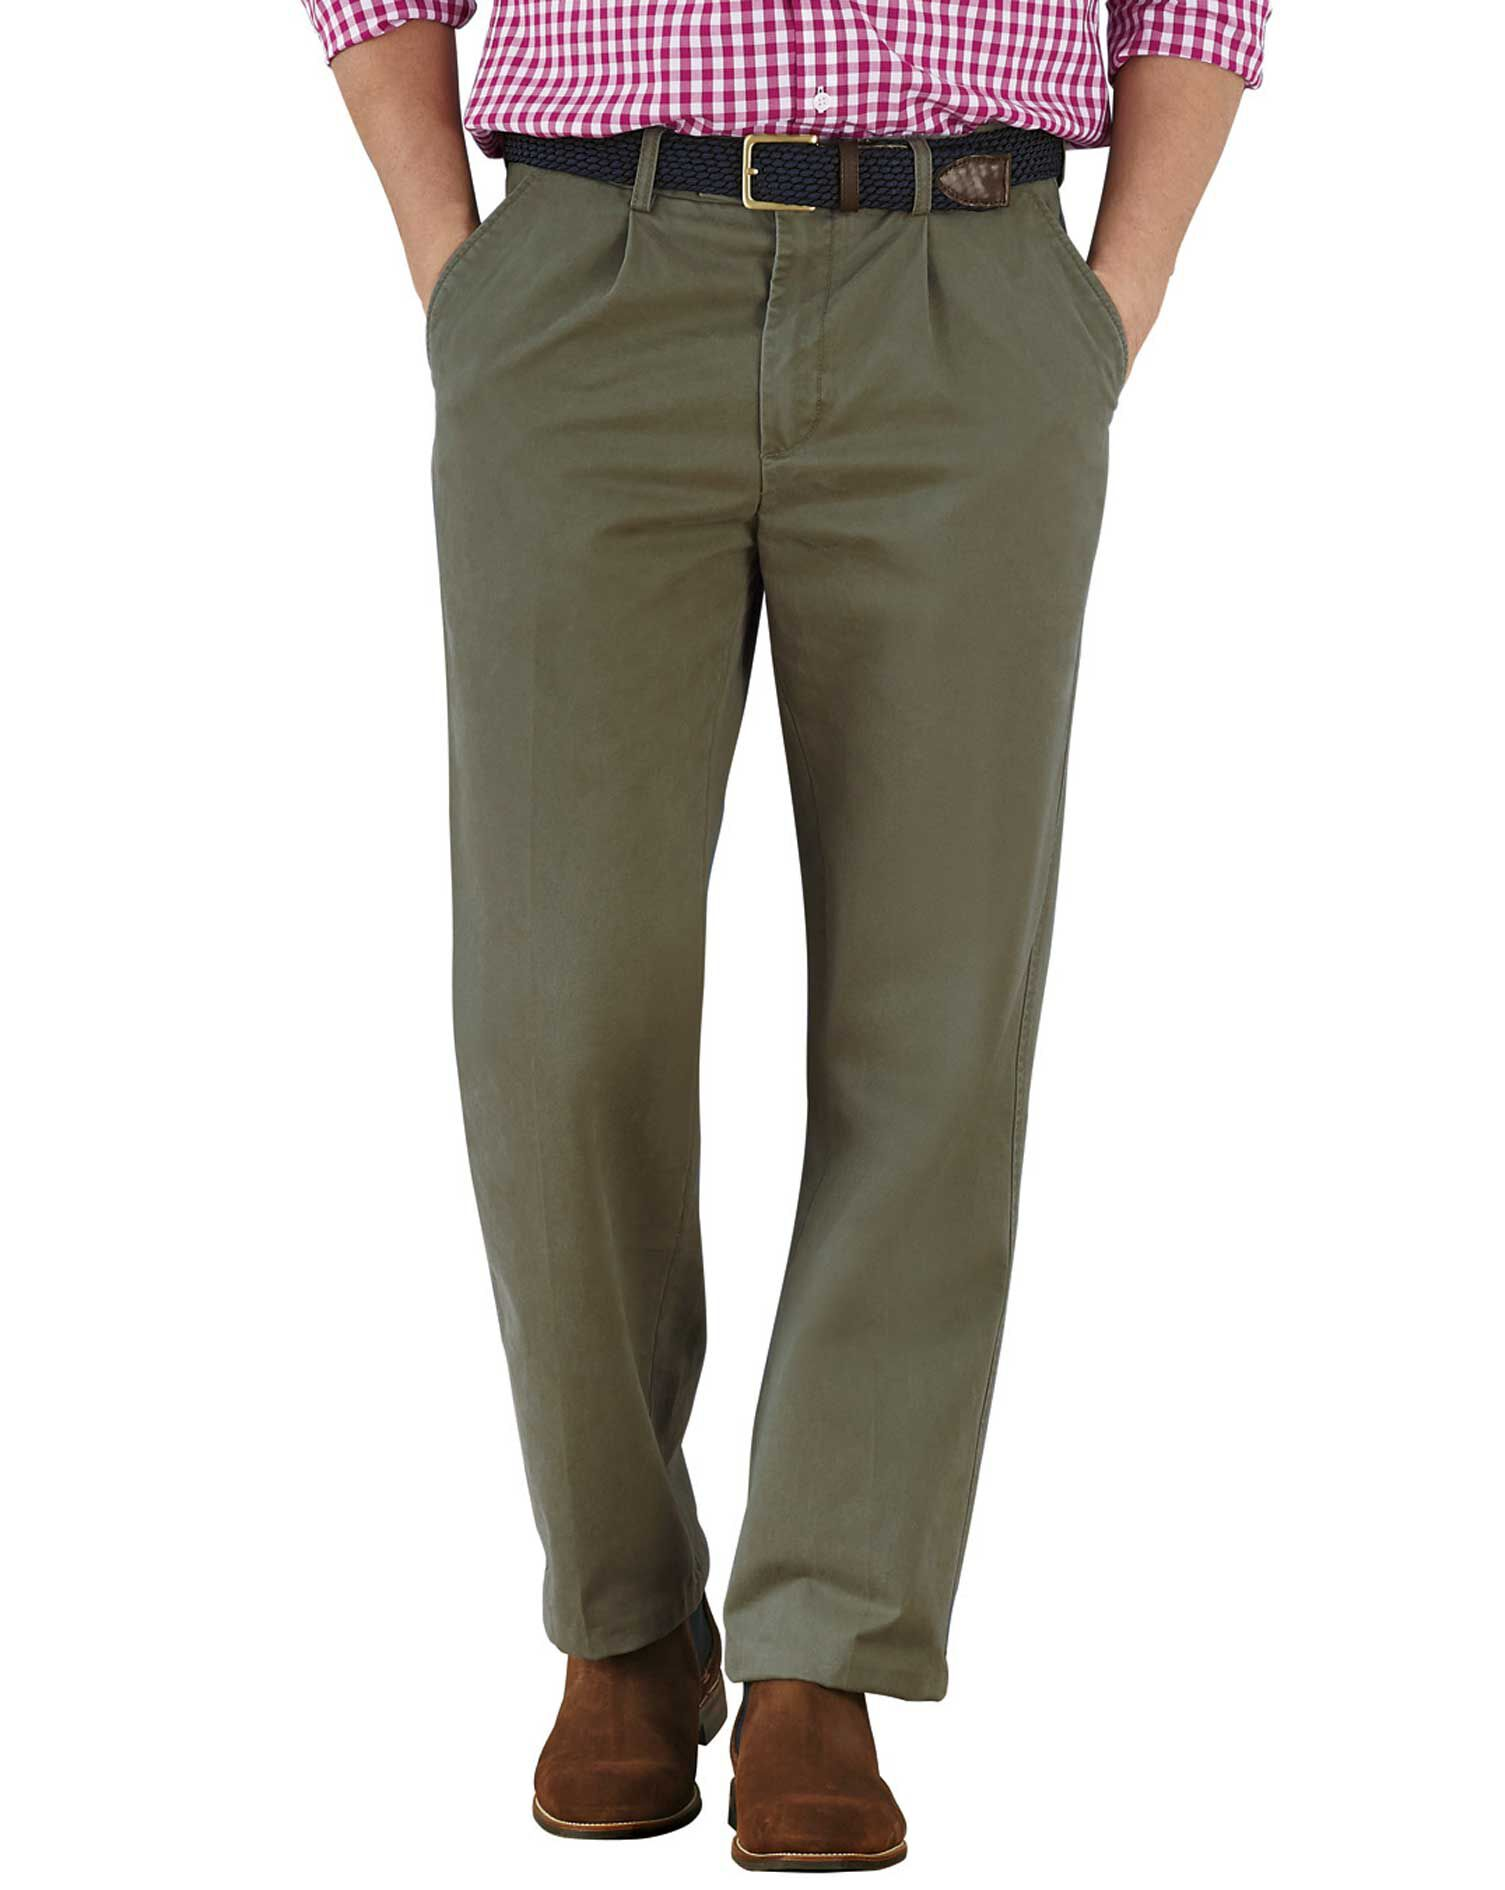 Olive Classic Fit Single Pleat Cotton Chino Trousers Size W38 L30 by Charles Tyrwhitt